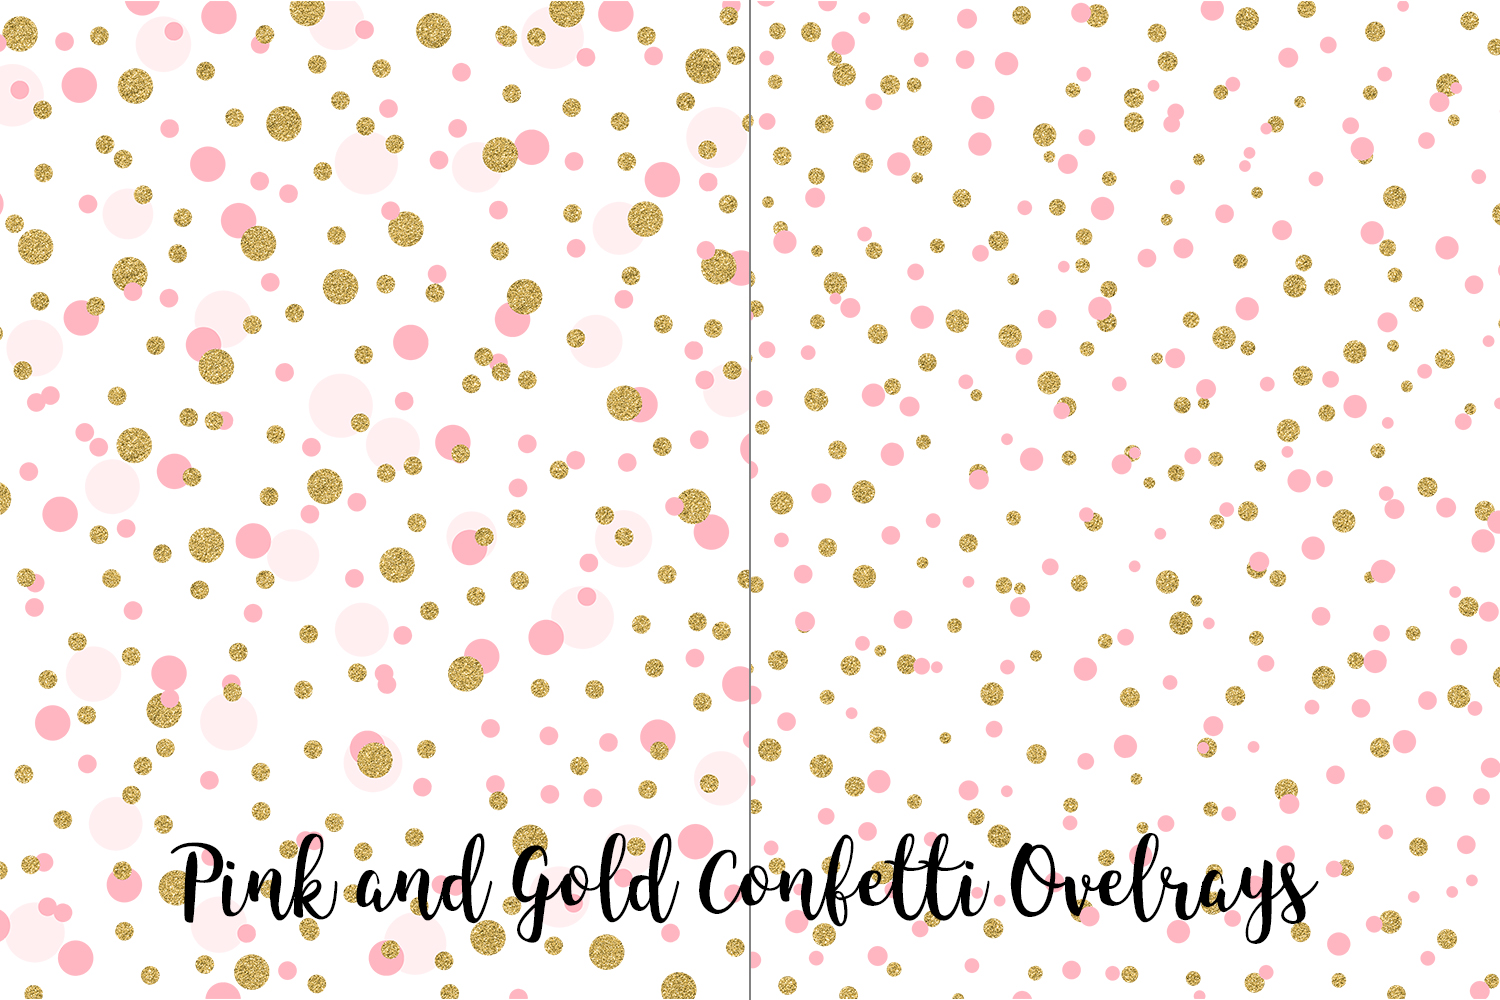 Pink and Gold Confetti Overlays, Transparent PNGs example image 4